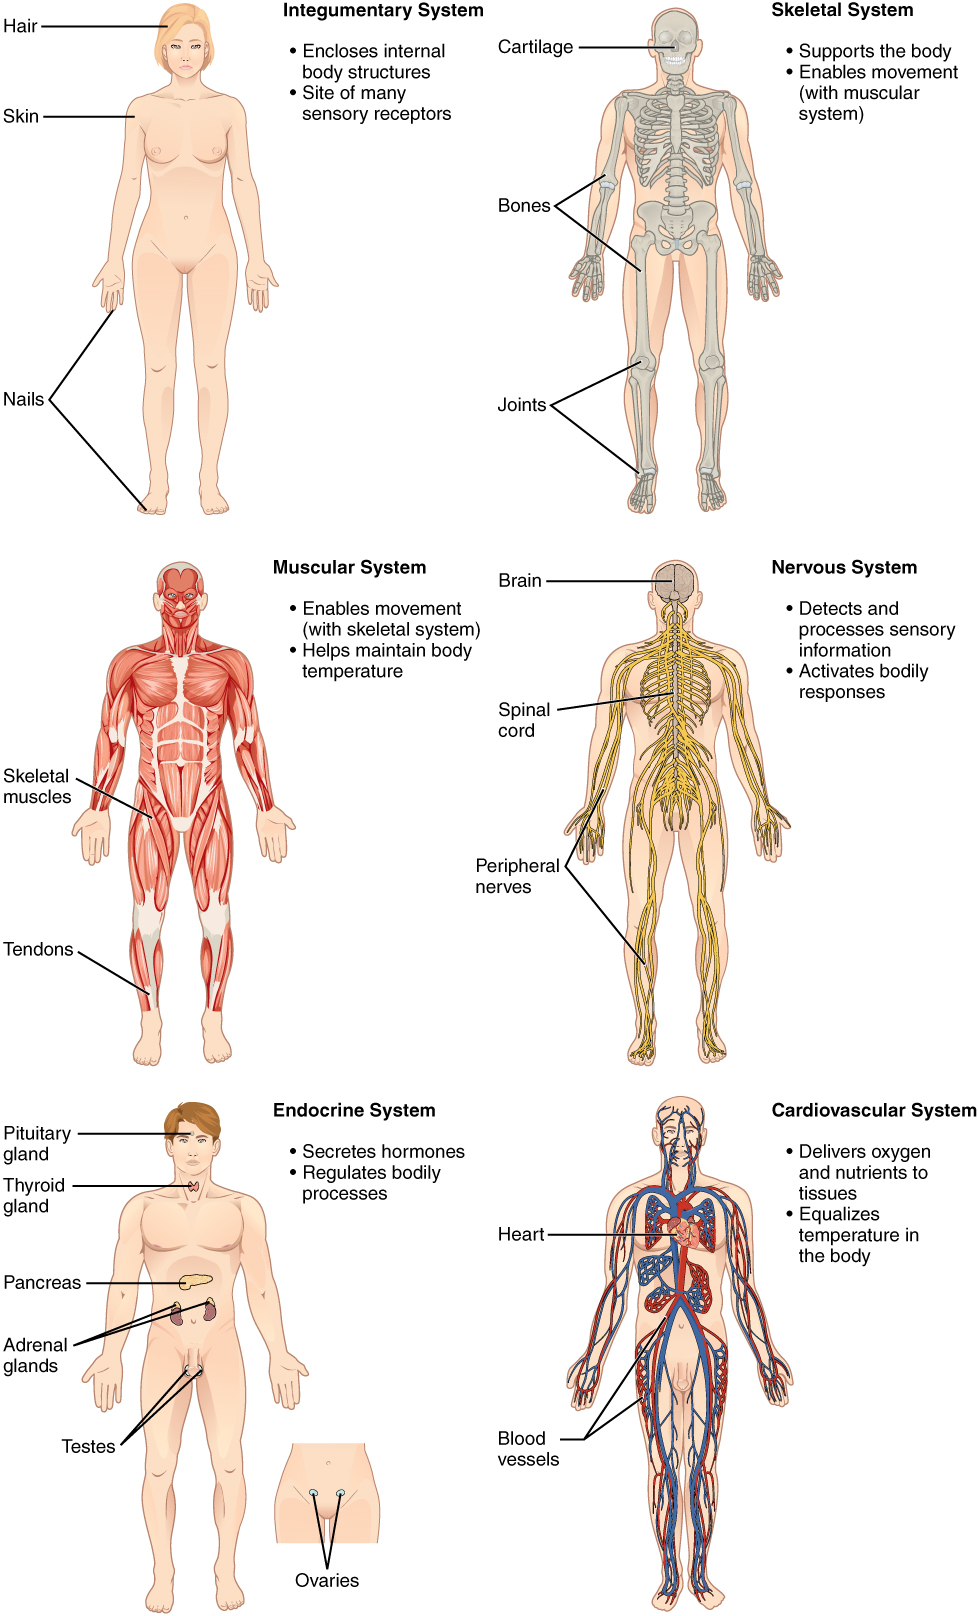 Diagram Of Human Body Organs The Human Organ Systems Human Anatomy And Physiology Lab Bsb 141